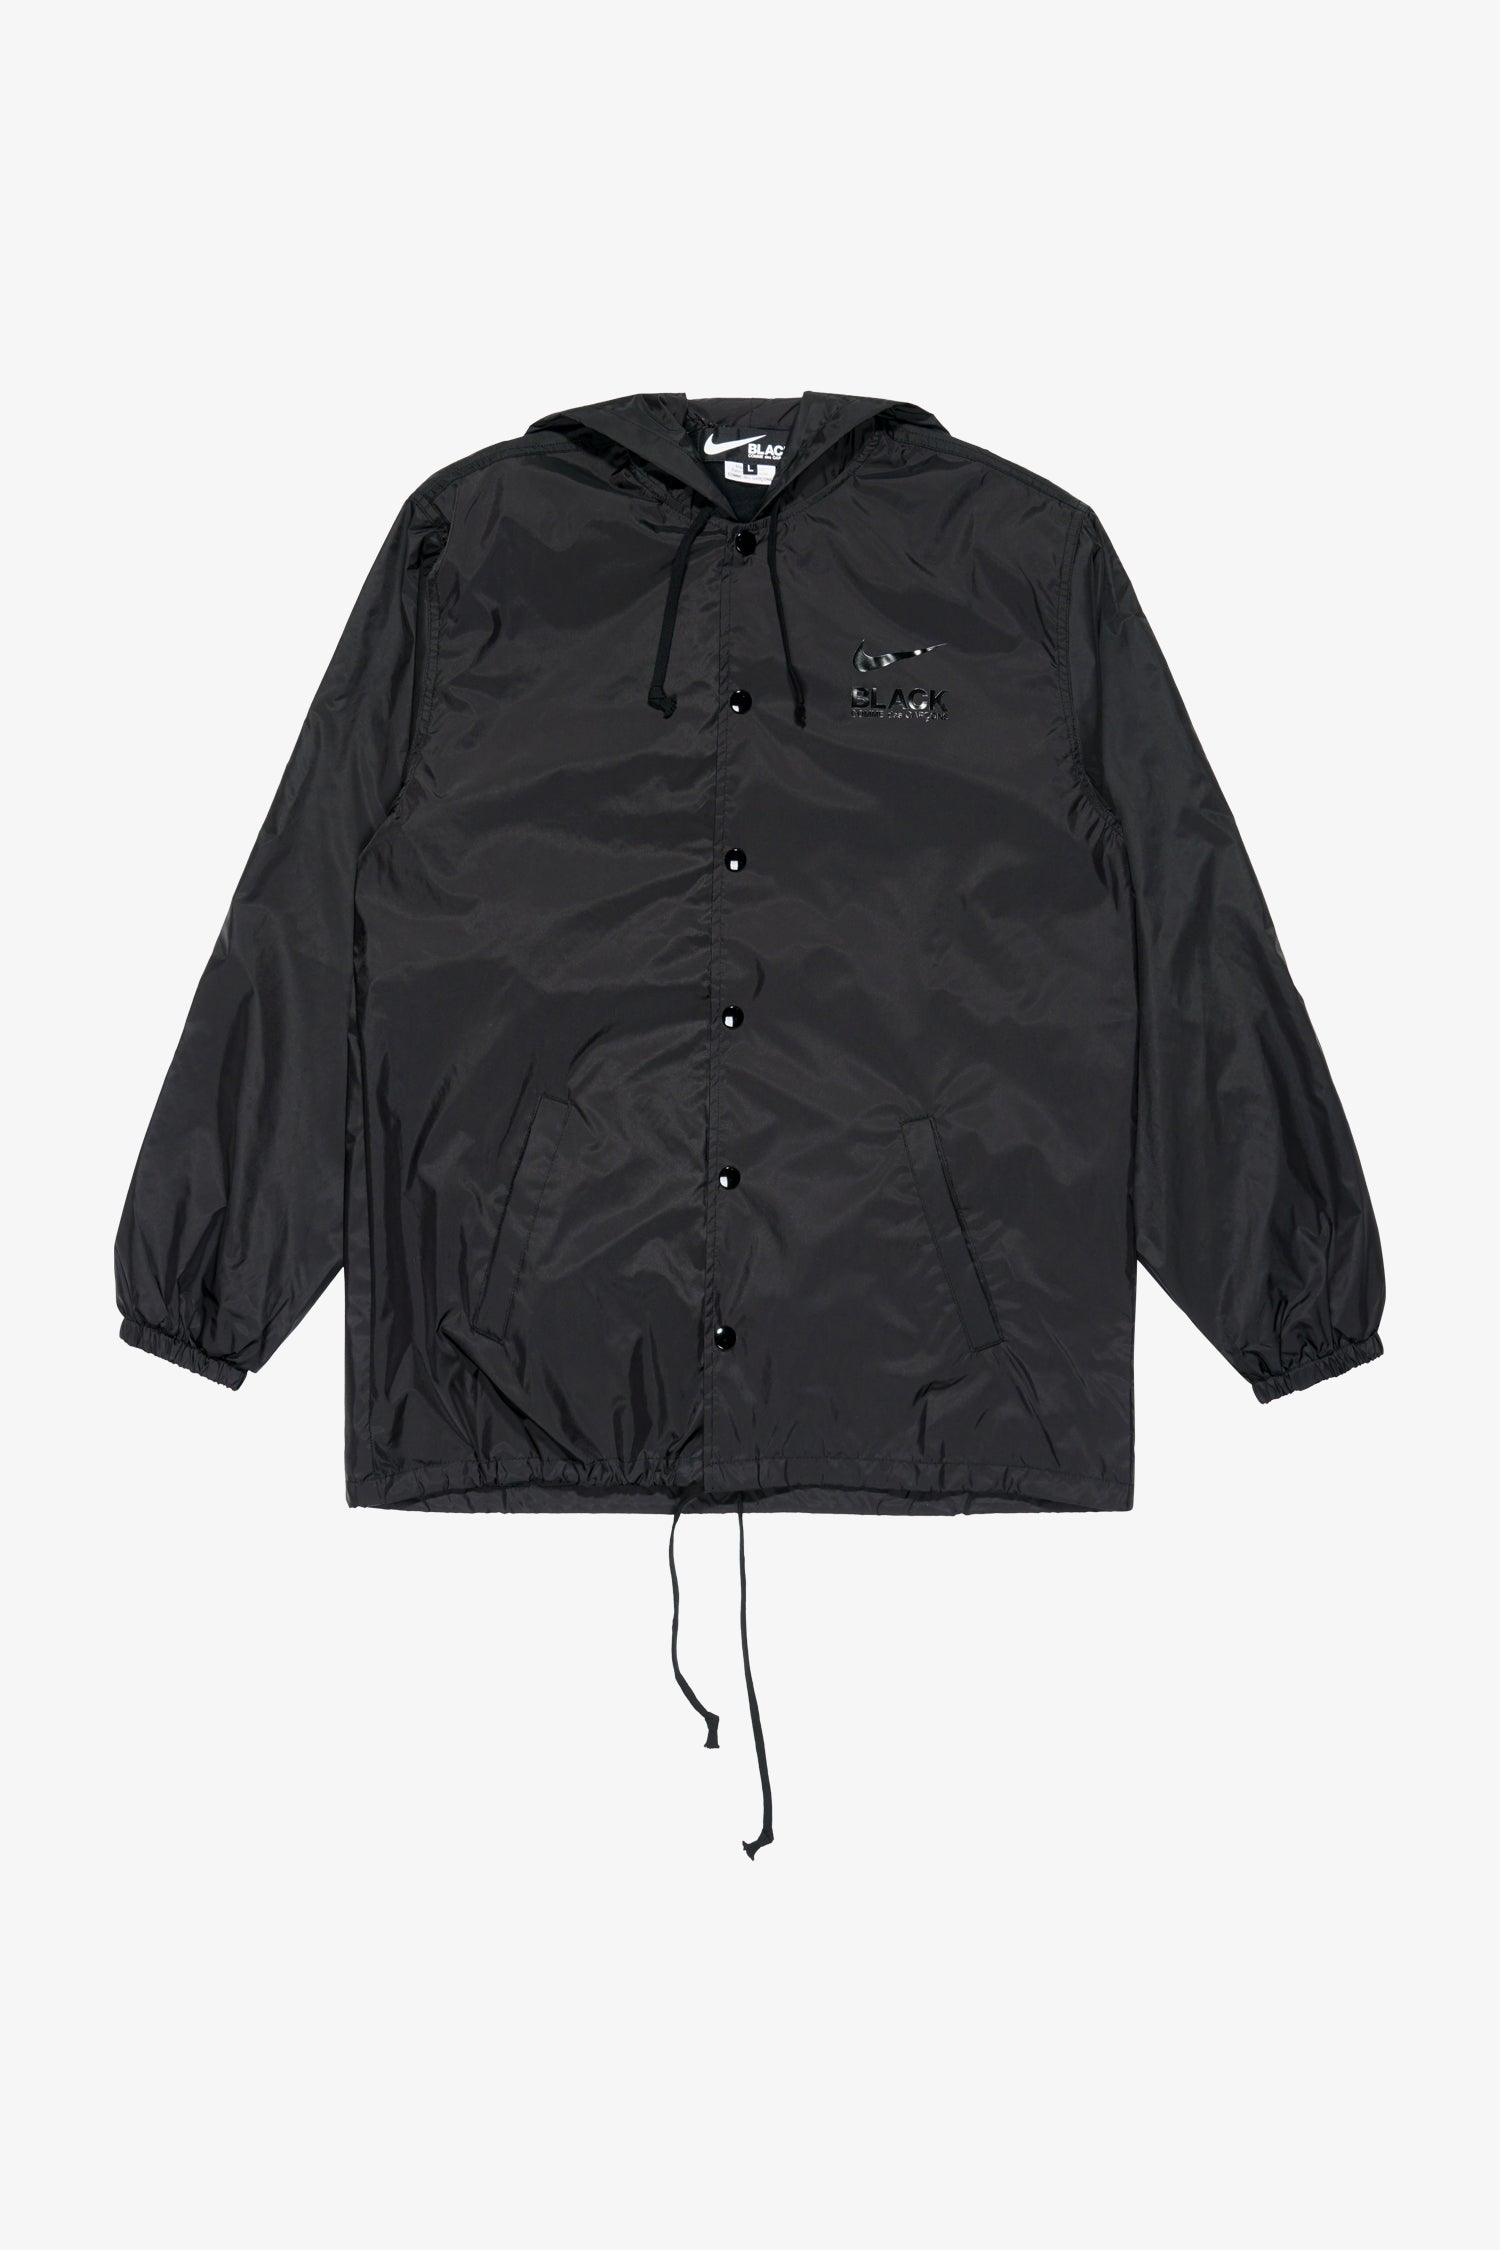 Selectshop FRAME - COMME DES GARCONS BLACK Nike BRS Hooded Coach Jacket Outerwear Dubai